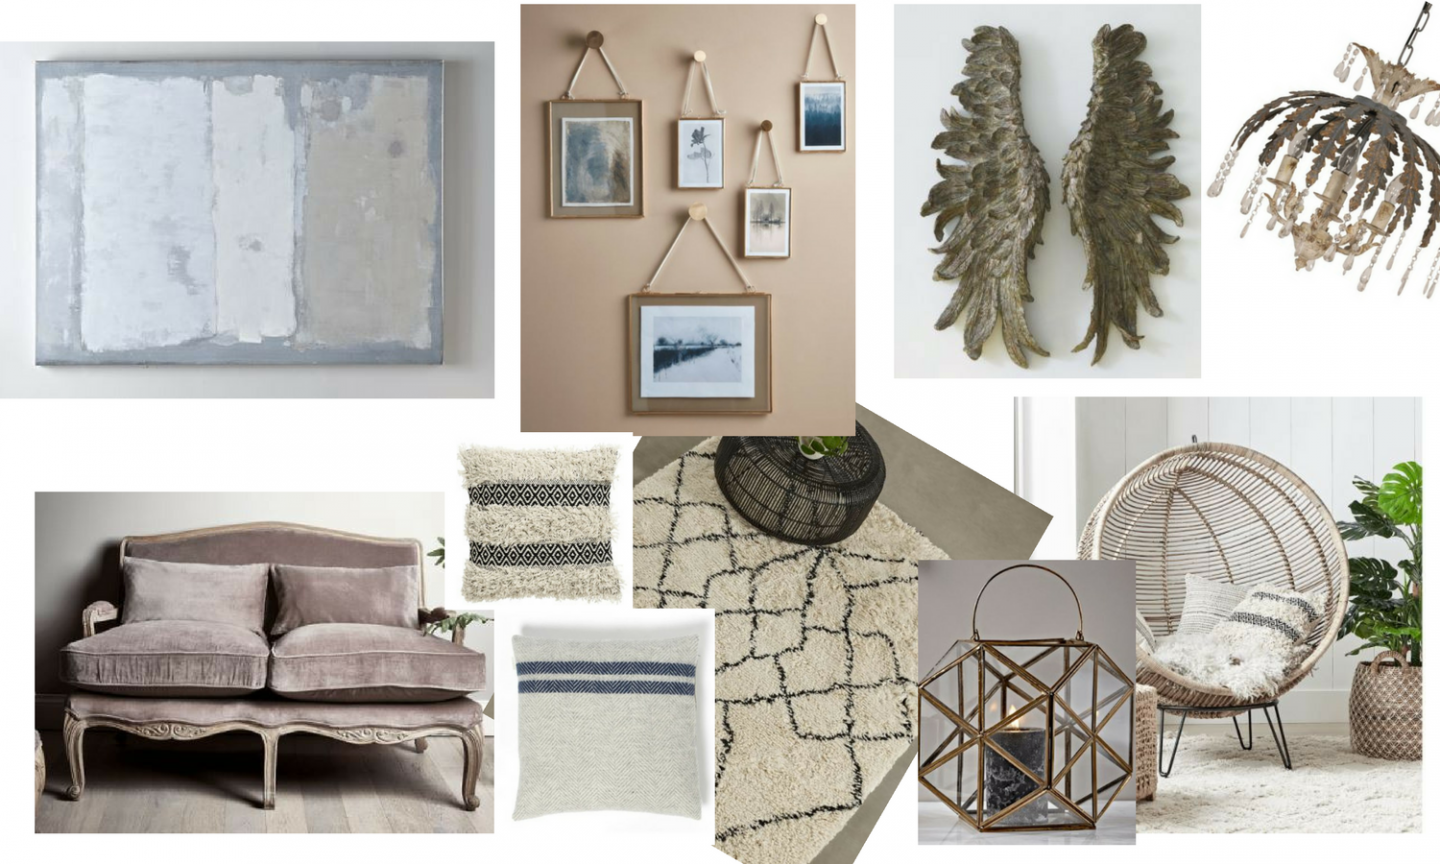 Living Room Inspiration With Cox & Cox